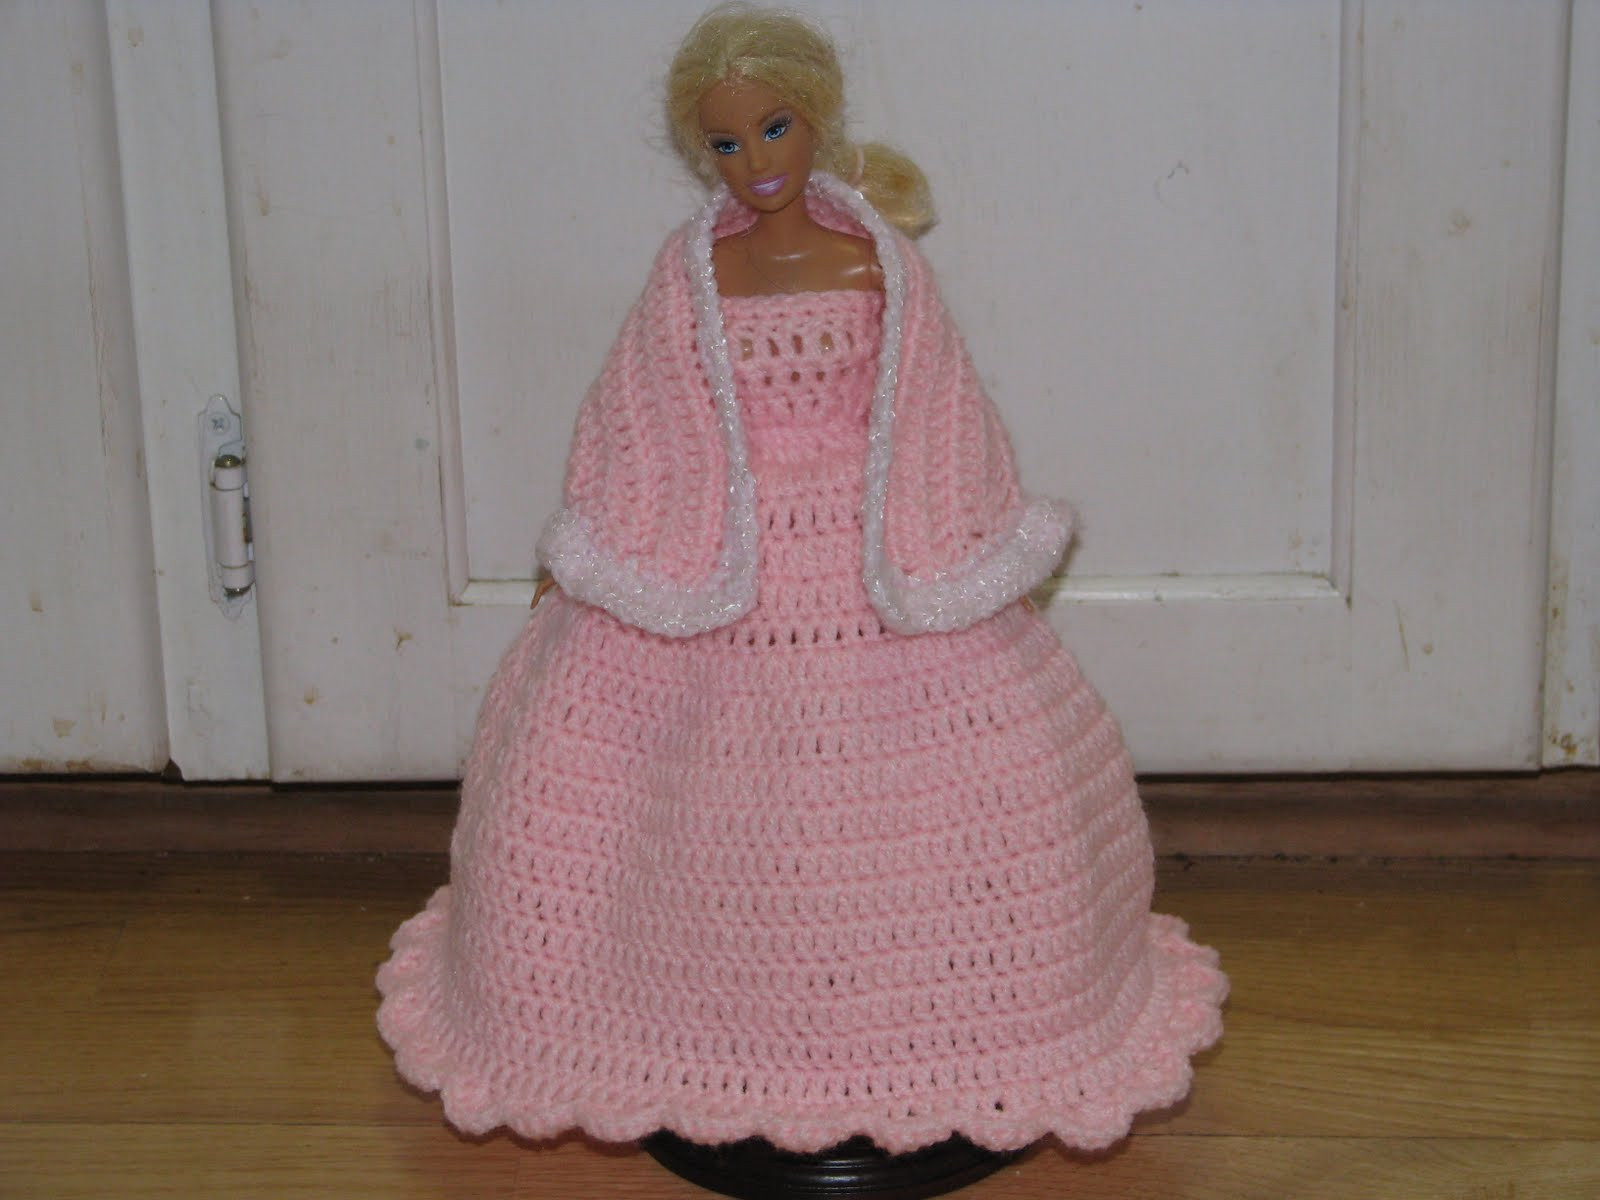 Crochet Barbie Dress Lovely Craft attic Resources Barbie Crochet and Sewing Free Patterns Of Amazing 46 Pictures Crochet Barbie Dress